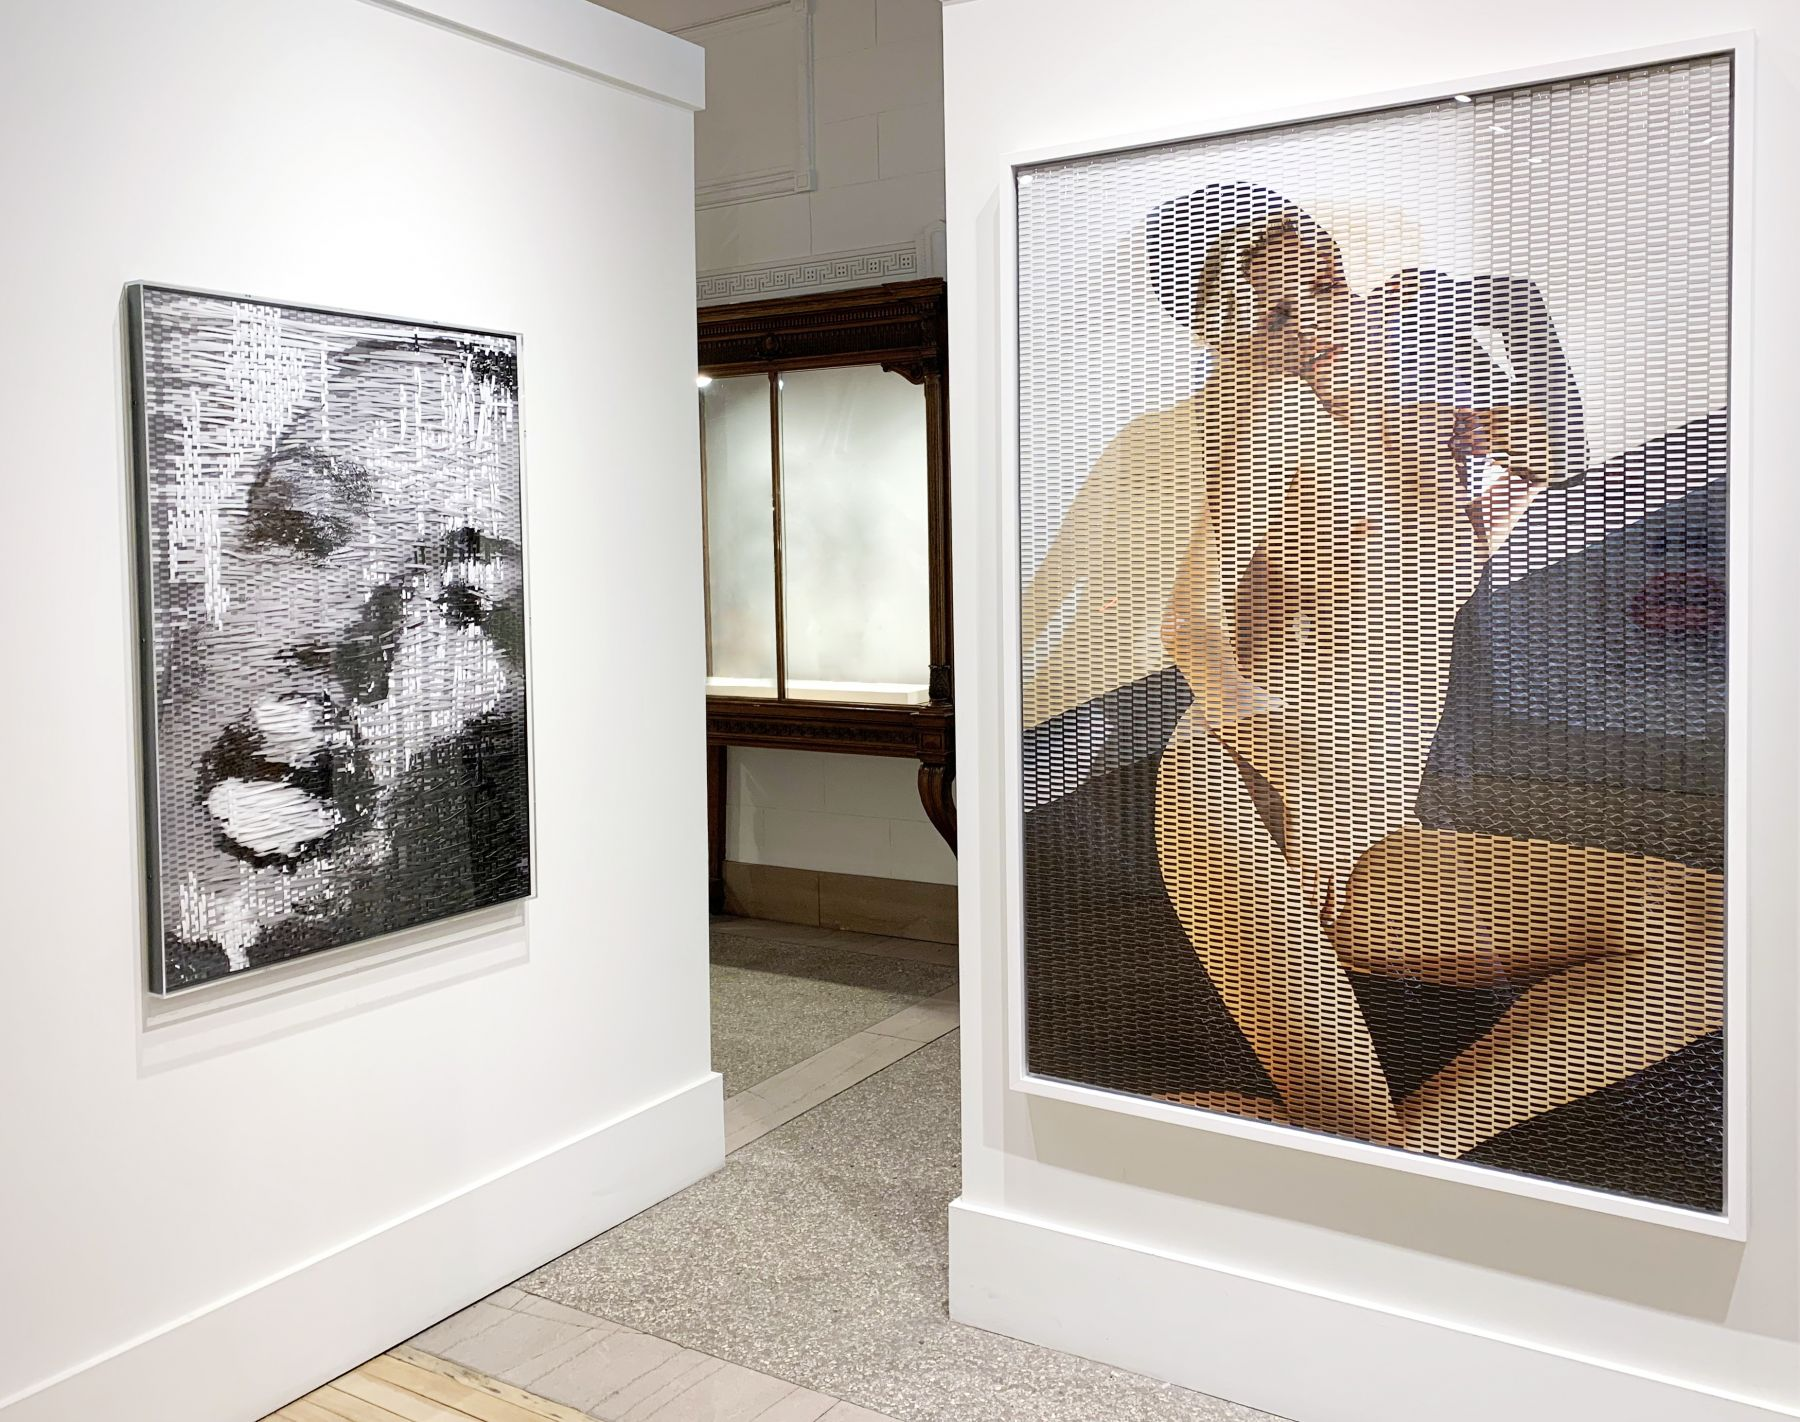 Martin Rondeau, Galerie LeRoyer